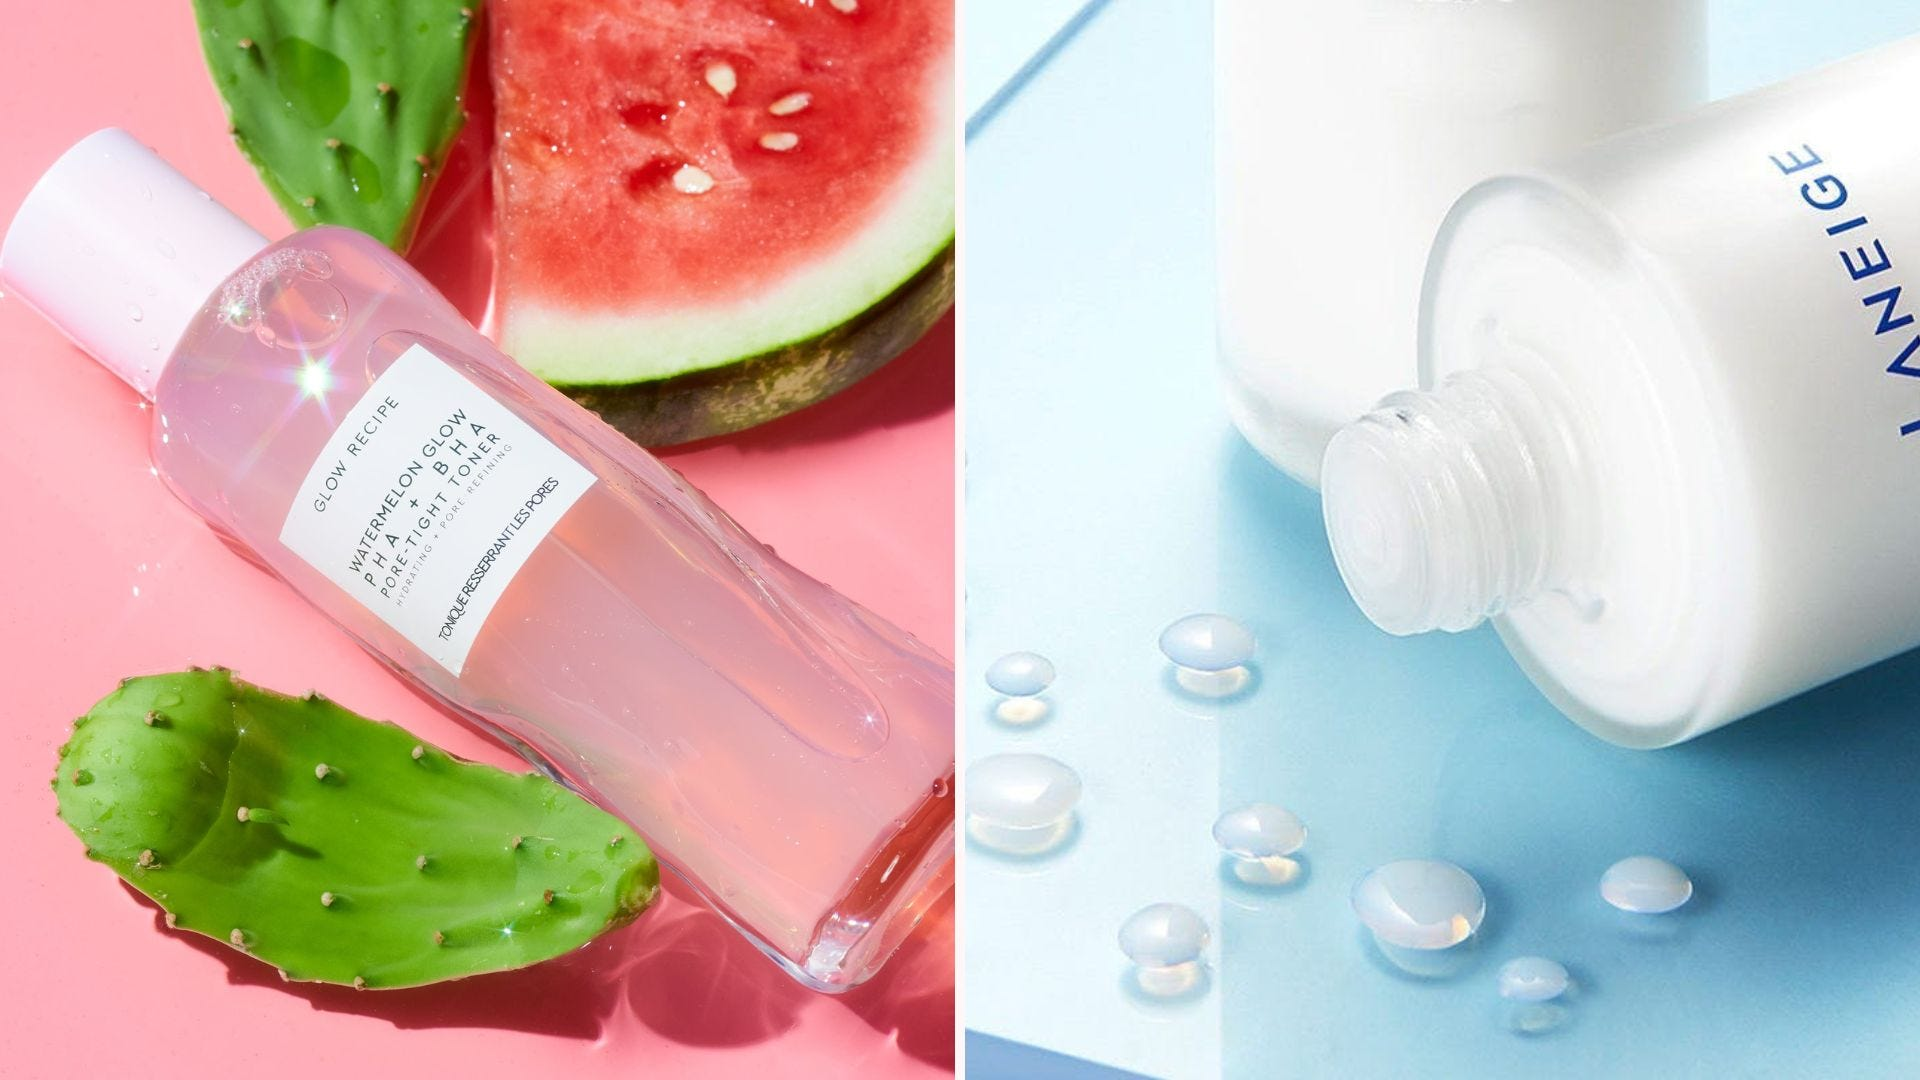 A pink bottle of toner with watermelon slices; a clear bottle with milky liquid drops